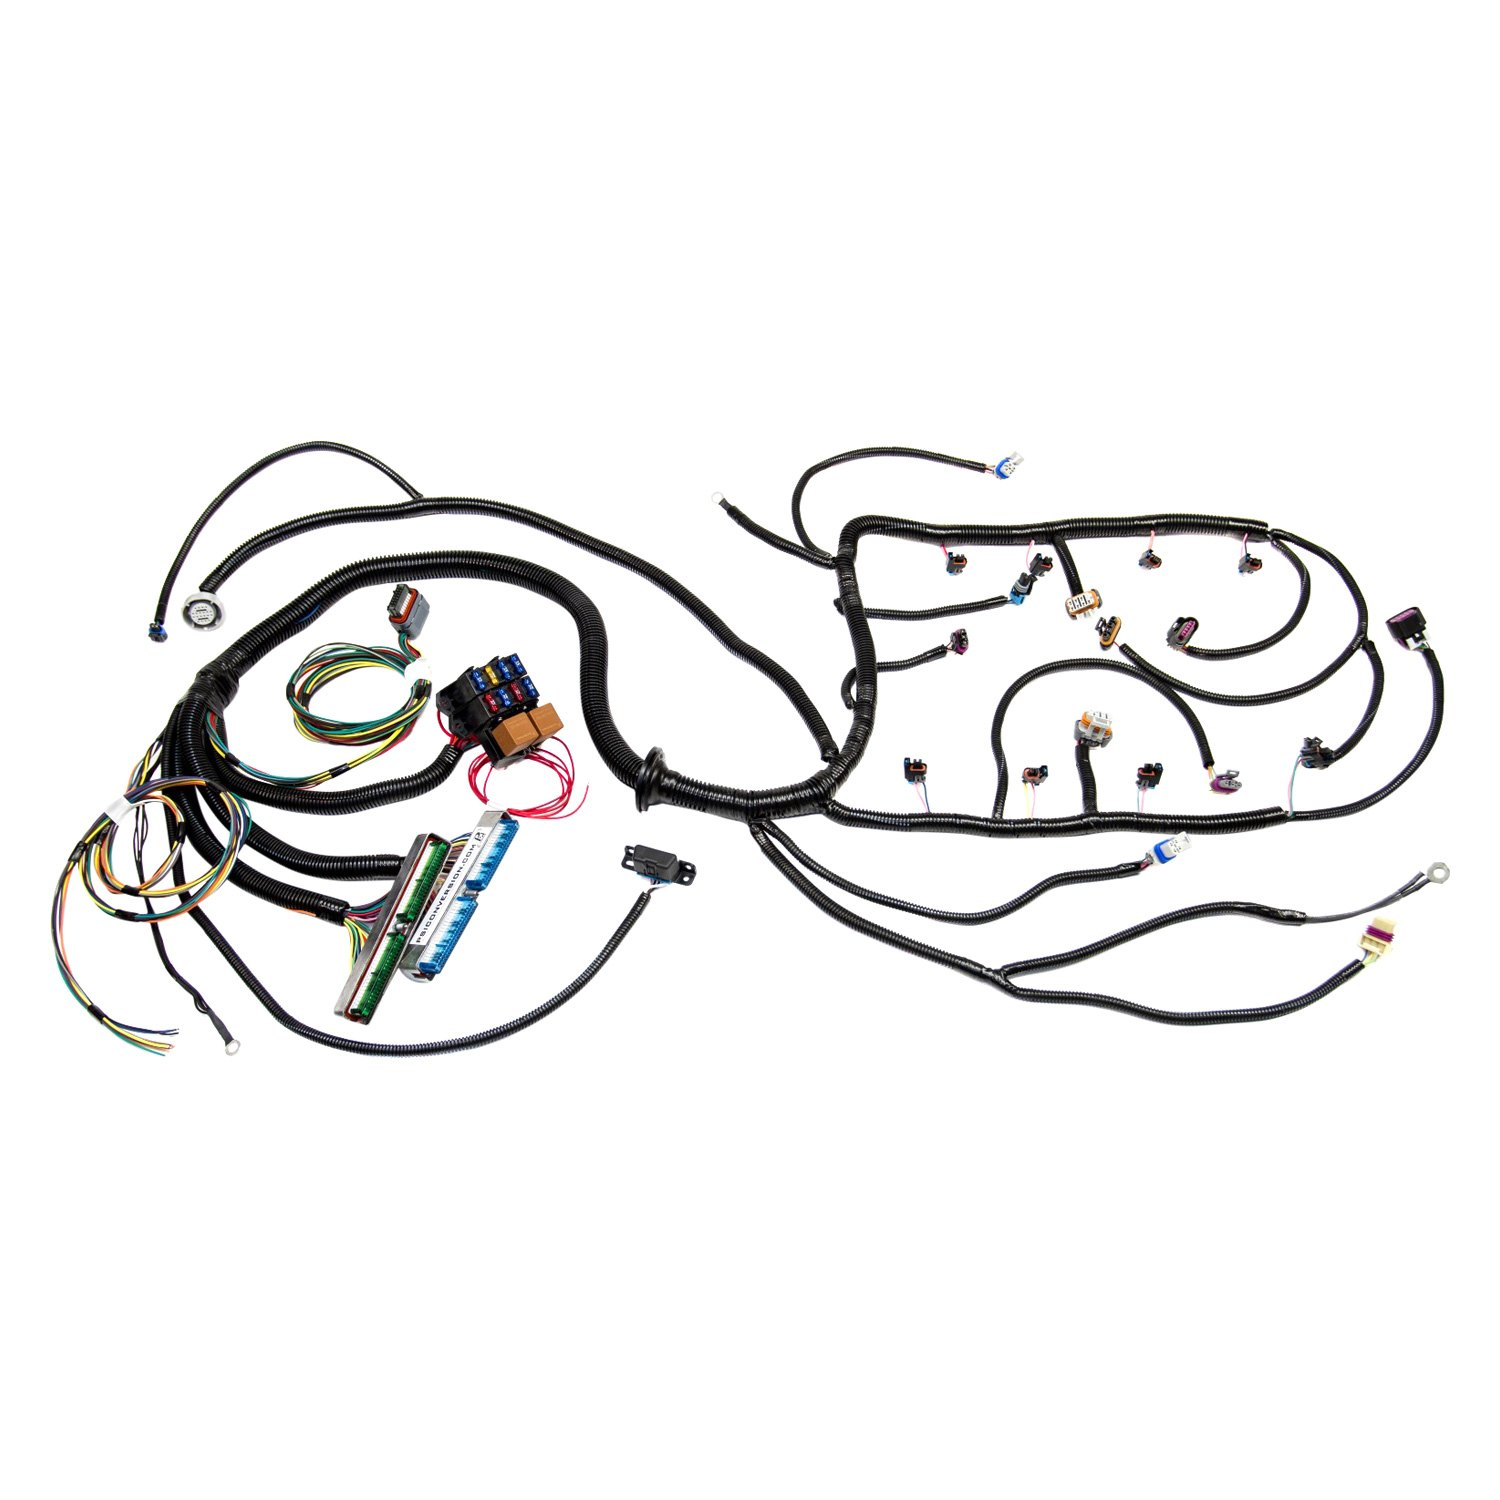 hight resolution of  gmc psi gmc w3500 forward w4500 forward with 4l60e or 4l80e 2012 dodge journey trailer wiring harness